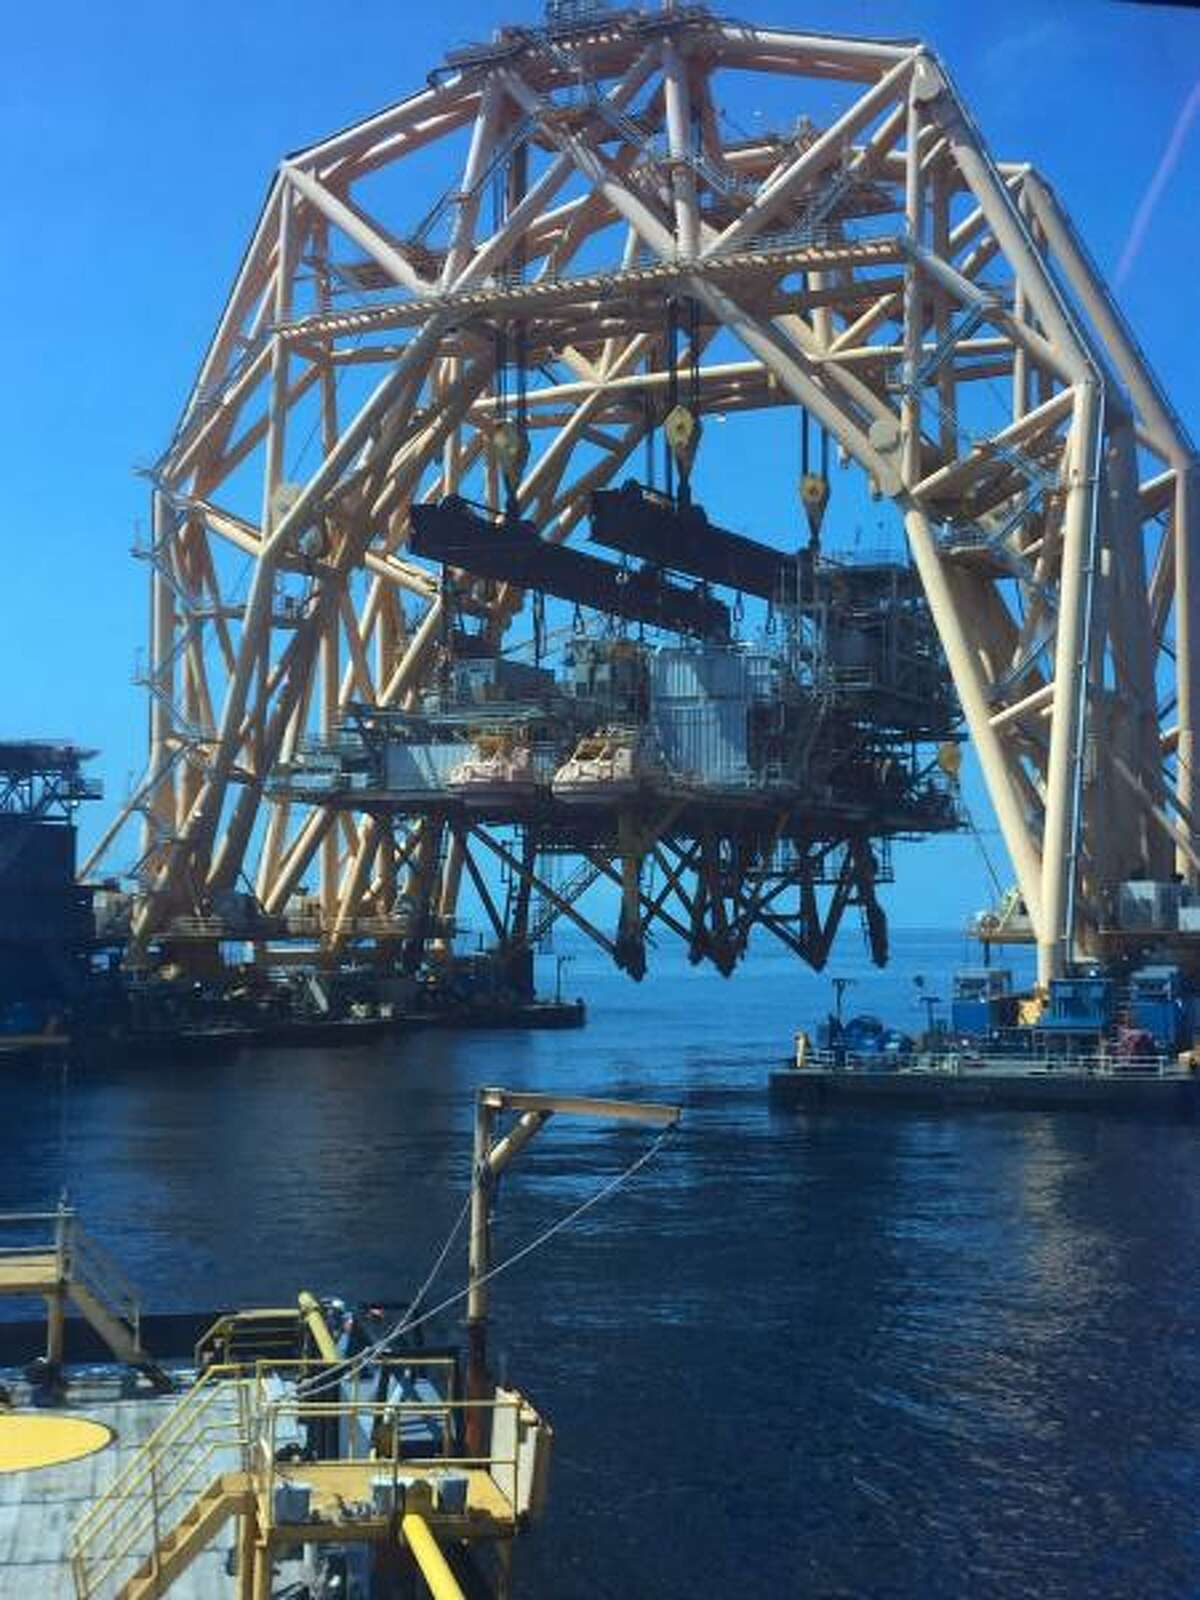 Cranes on a heavy lift vessel remove the topsides of Shell's 36-year-old Cougar oil and gas platform.